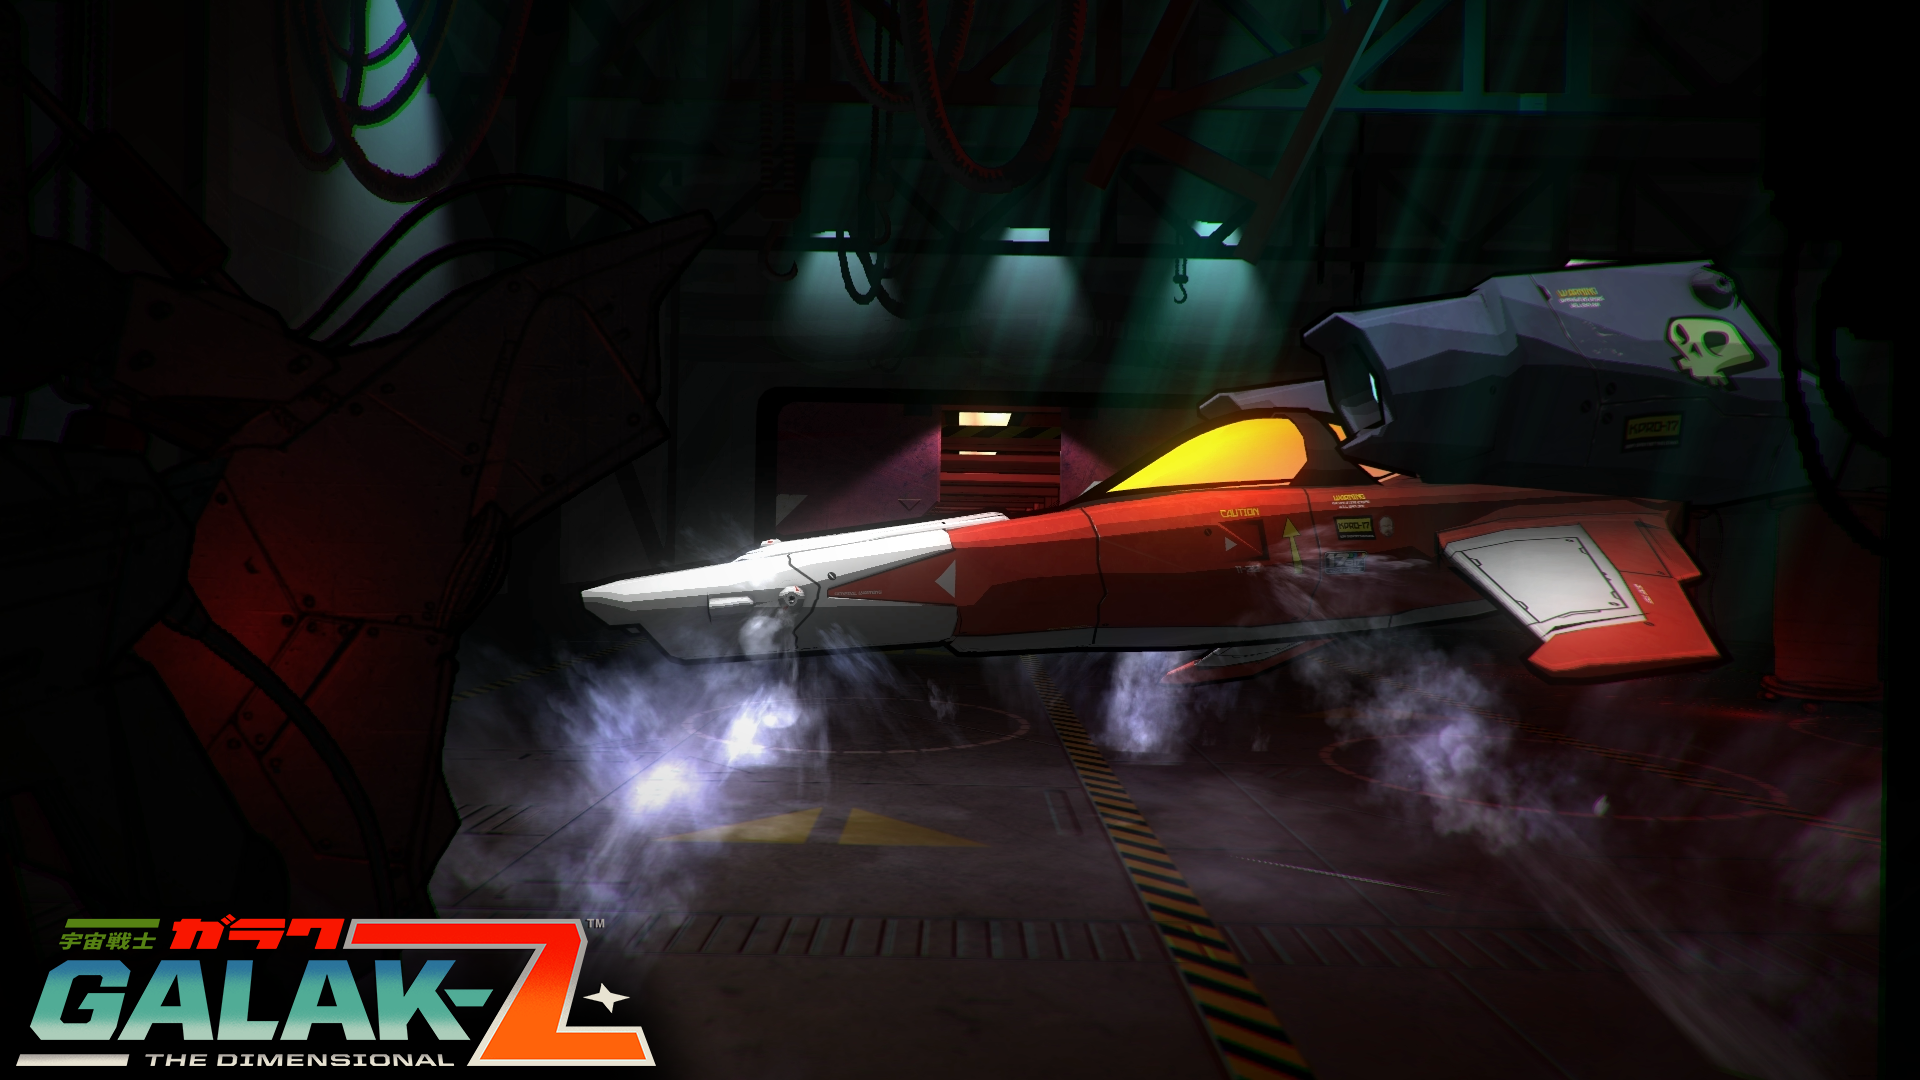 It wouldn't be a proper sci-fi retro anime without a dramatic ship launch from a tunnel.